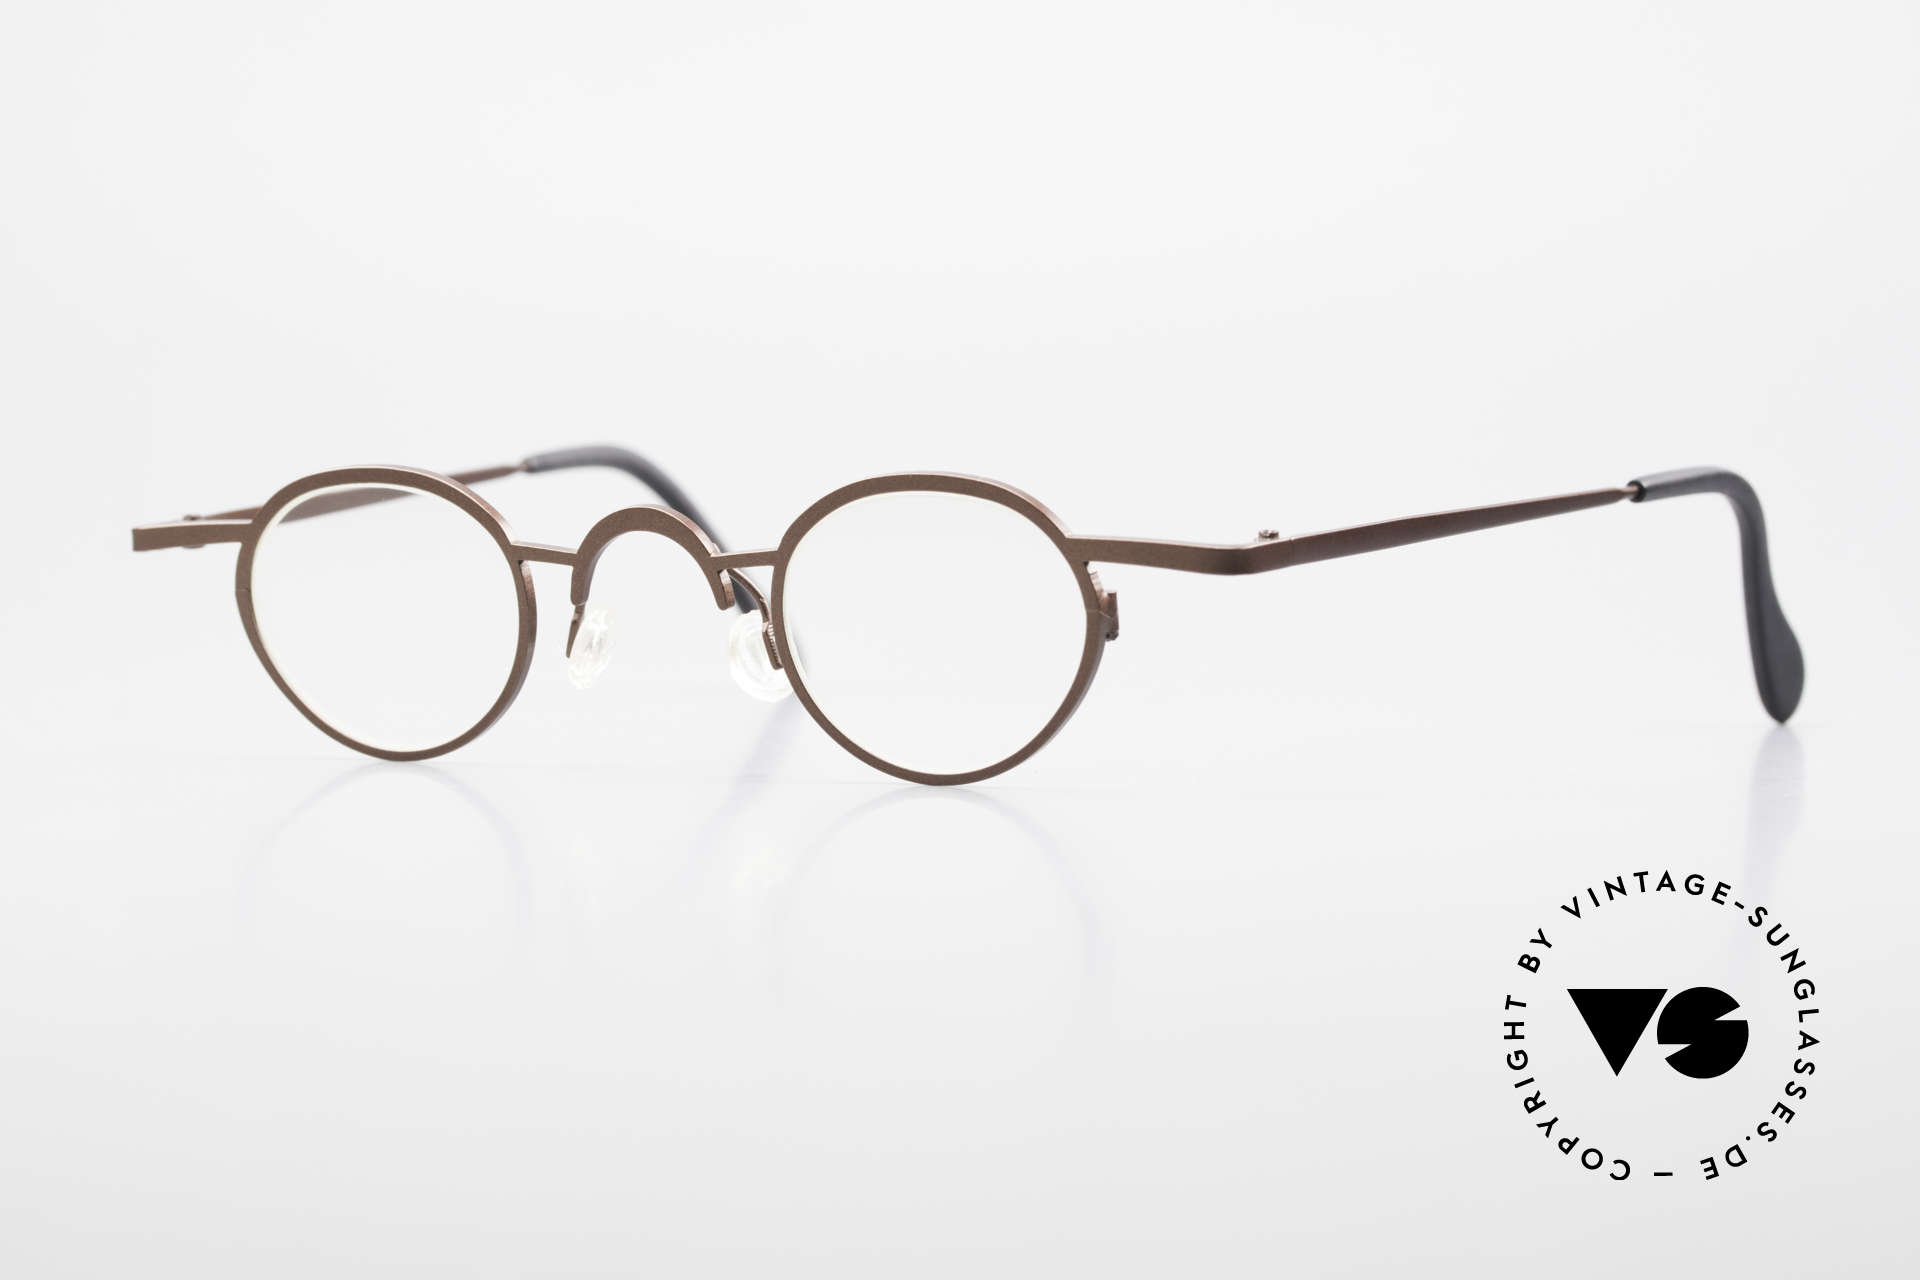 Theo Belgium Pat Avant-Garde Vintage Specs 90s, Theo Belgium = the most self-willed brand in the world, Made for Men and Women